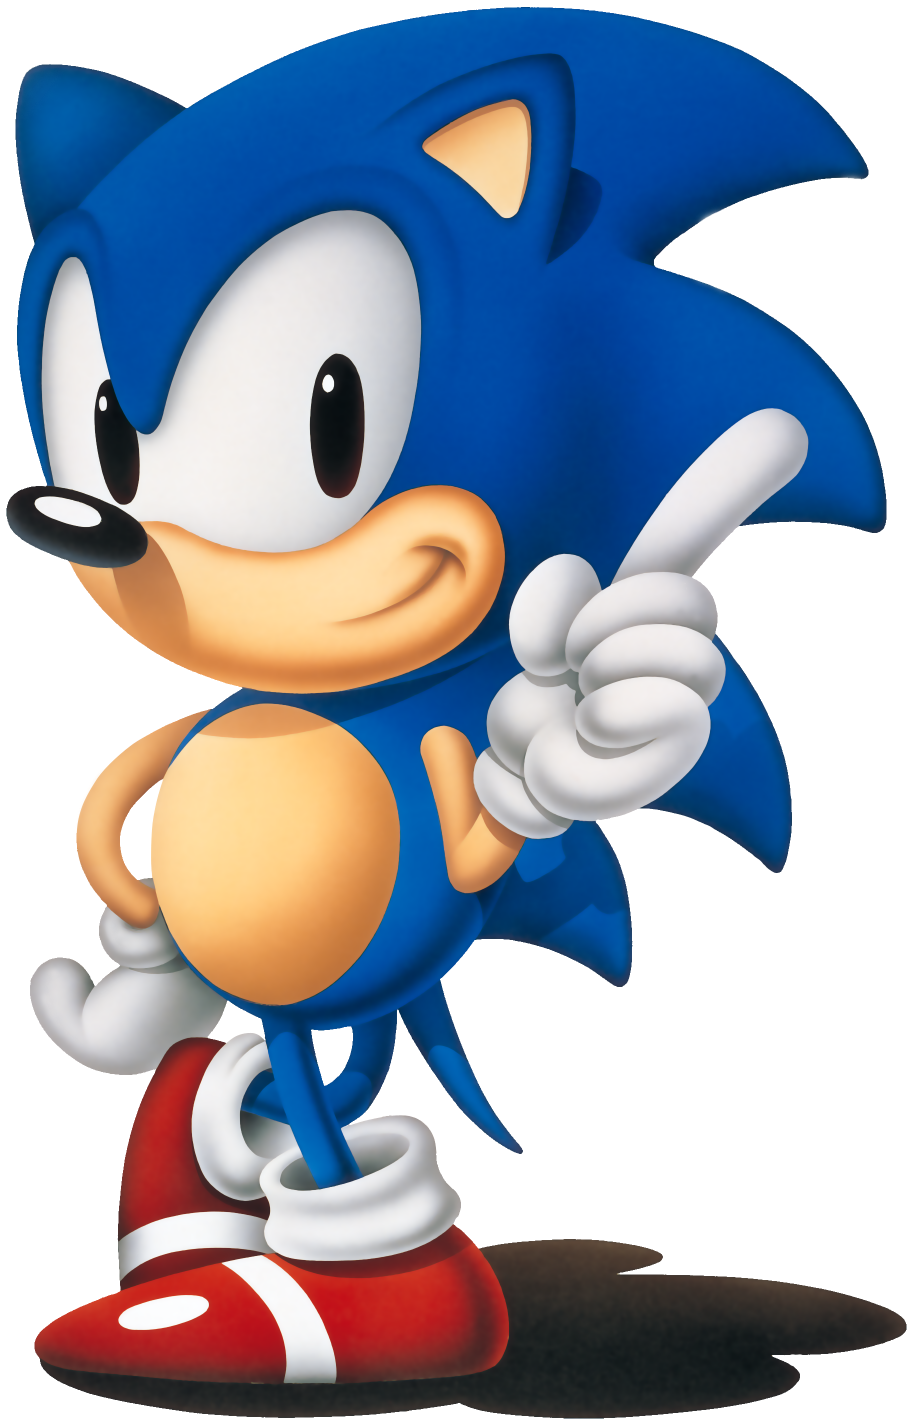 Sonic The Hedgehog PNG Photos - Sonic The Hedgehog PNG